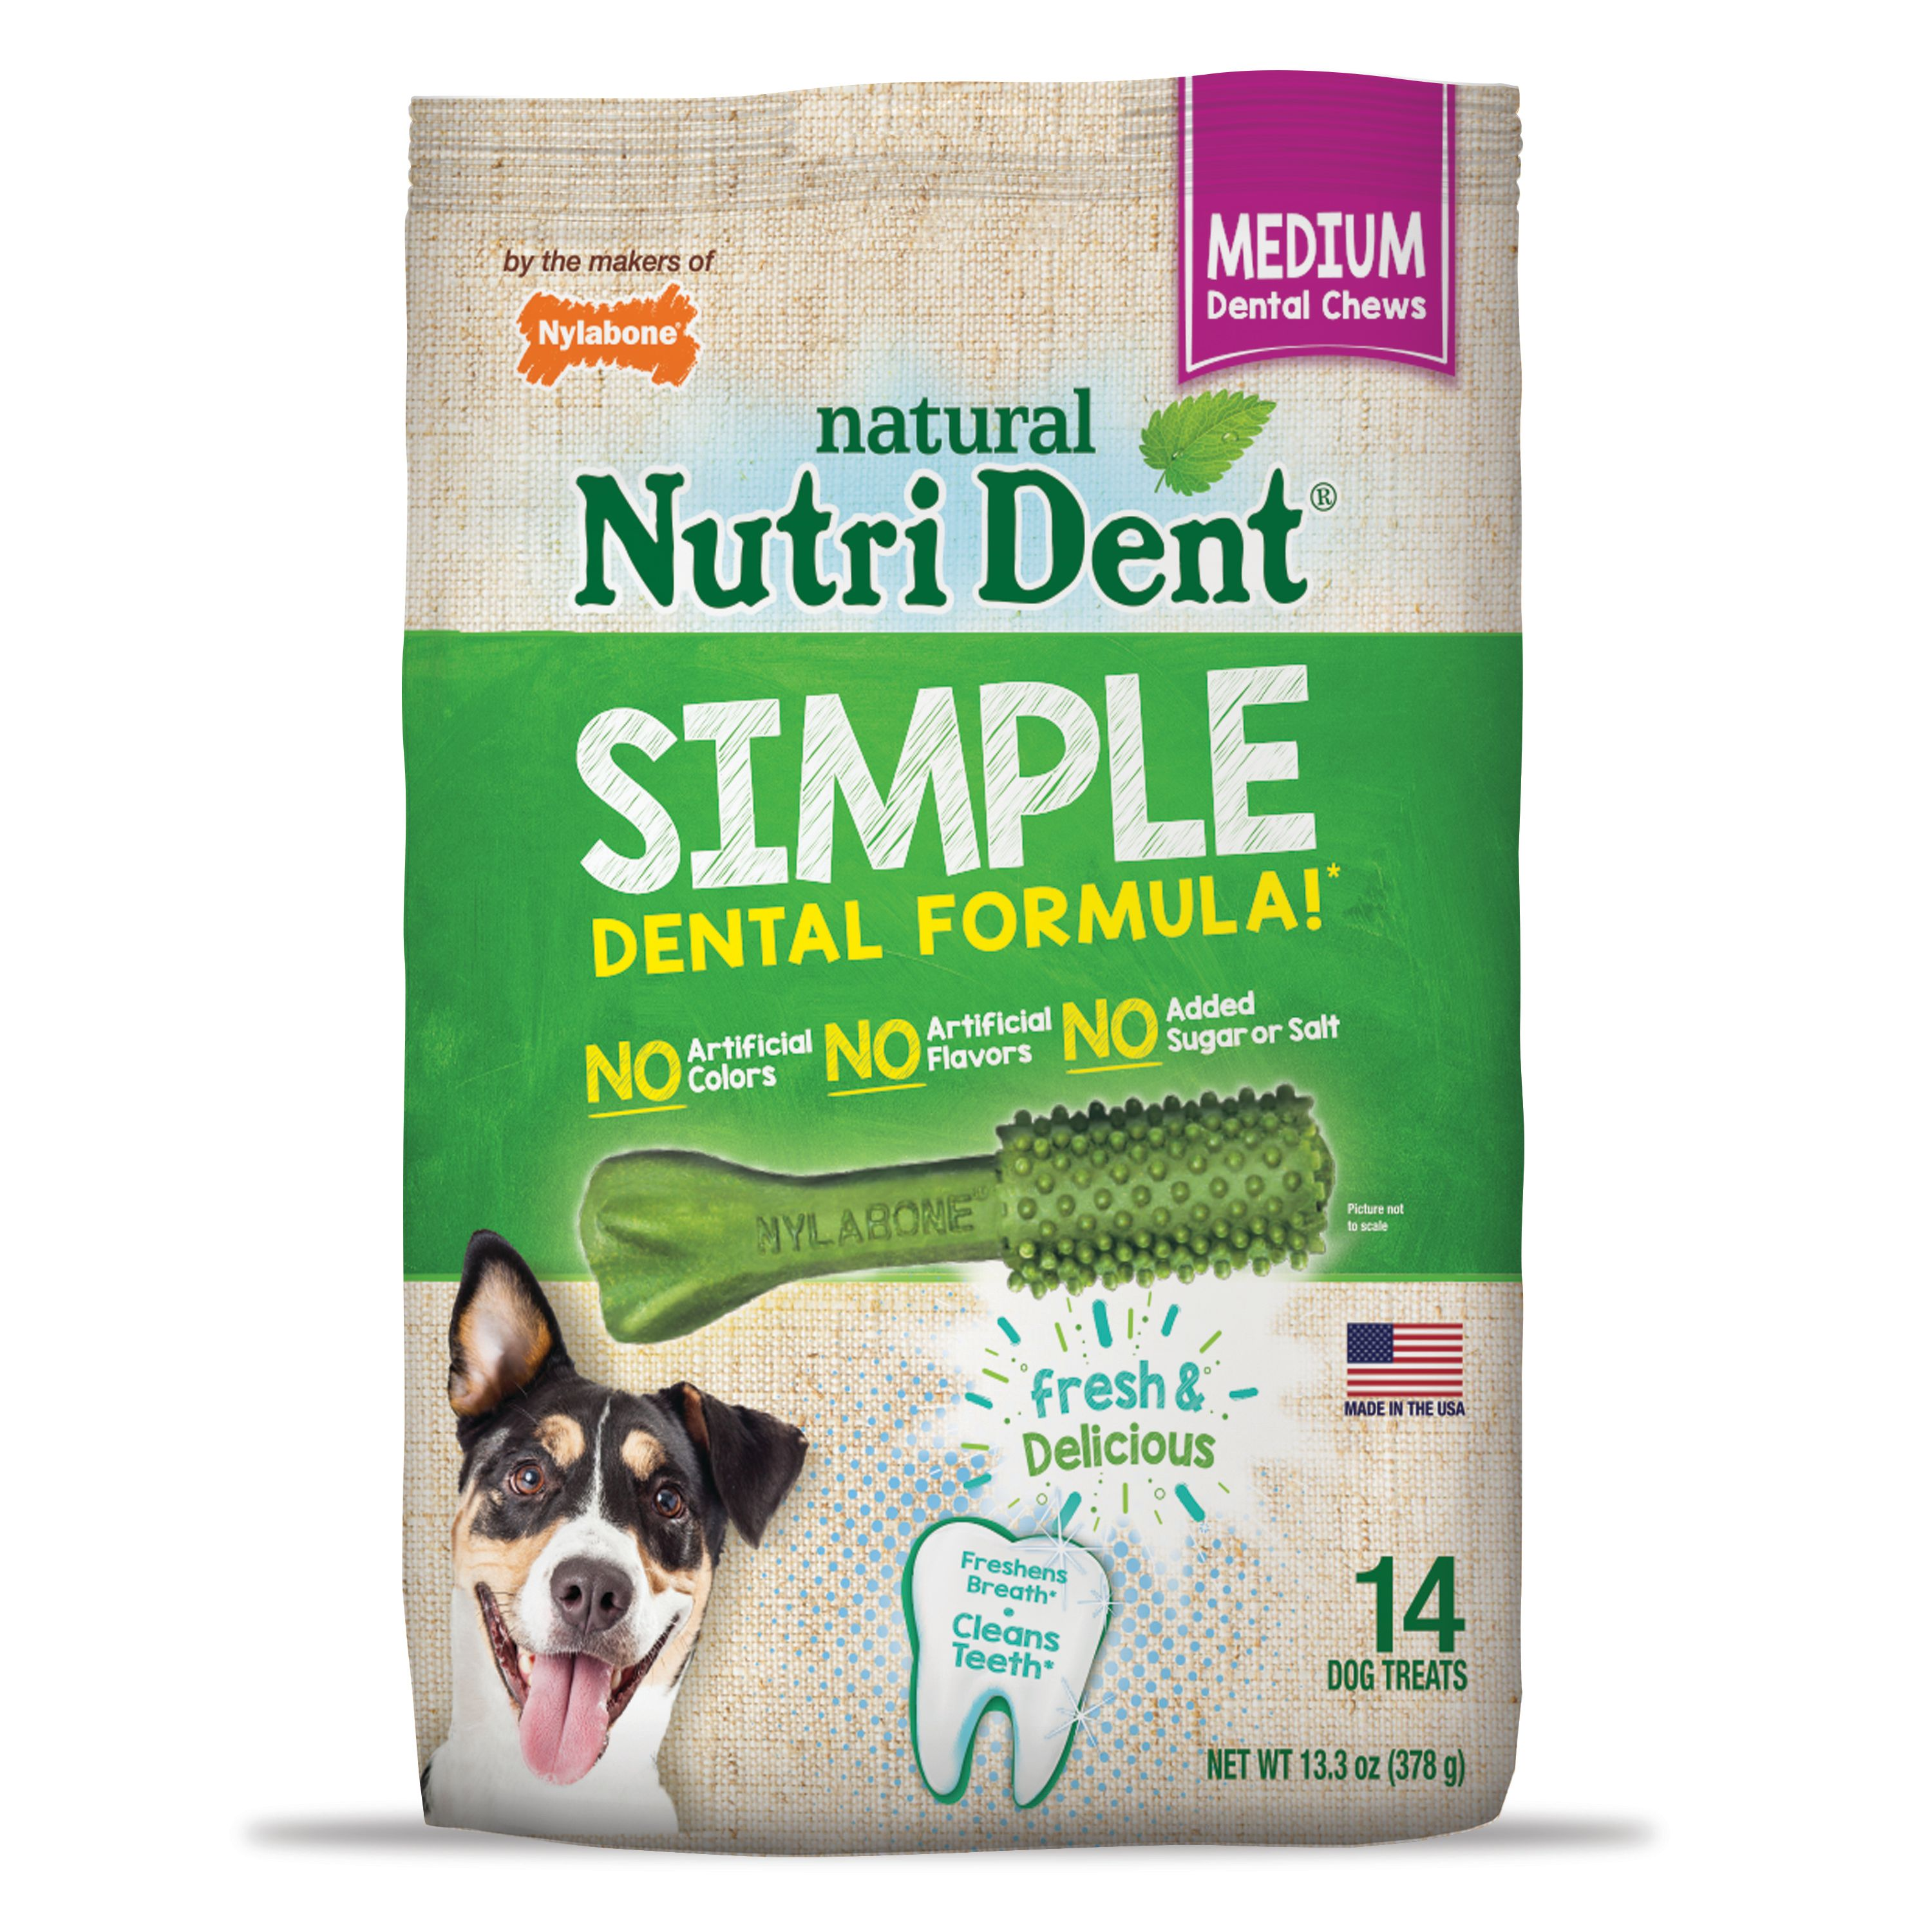 Nutri Dent Simple Dental Formula Dog Chew Treats, Medium, 14 Count